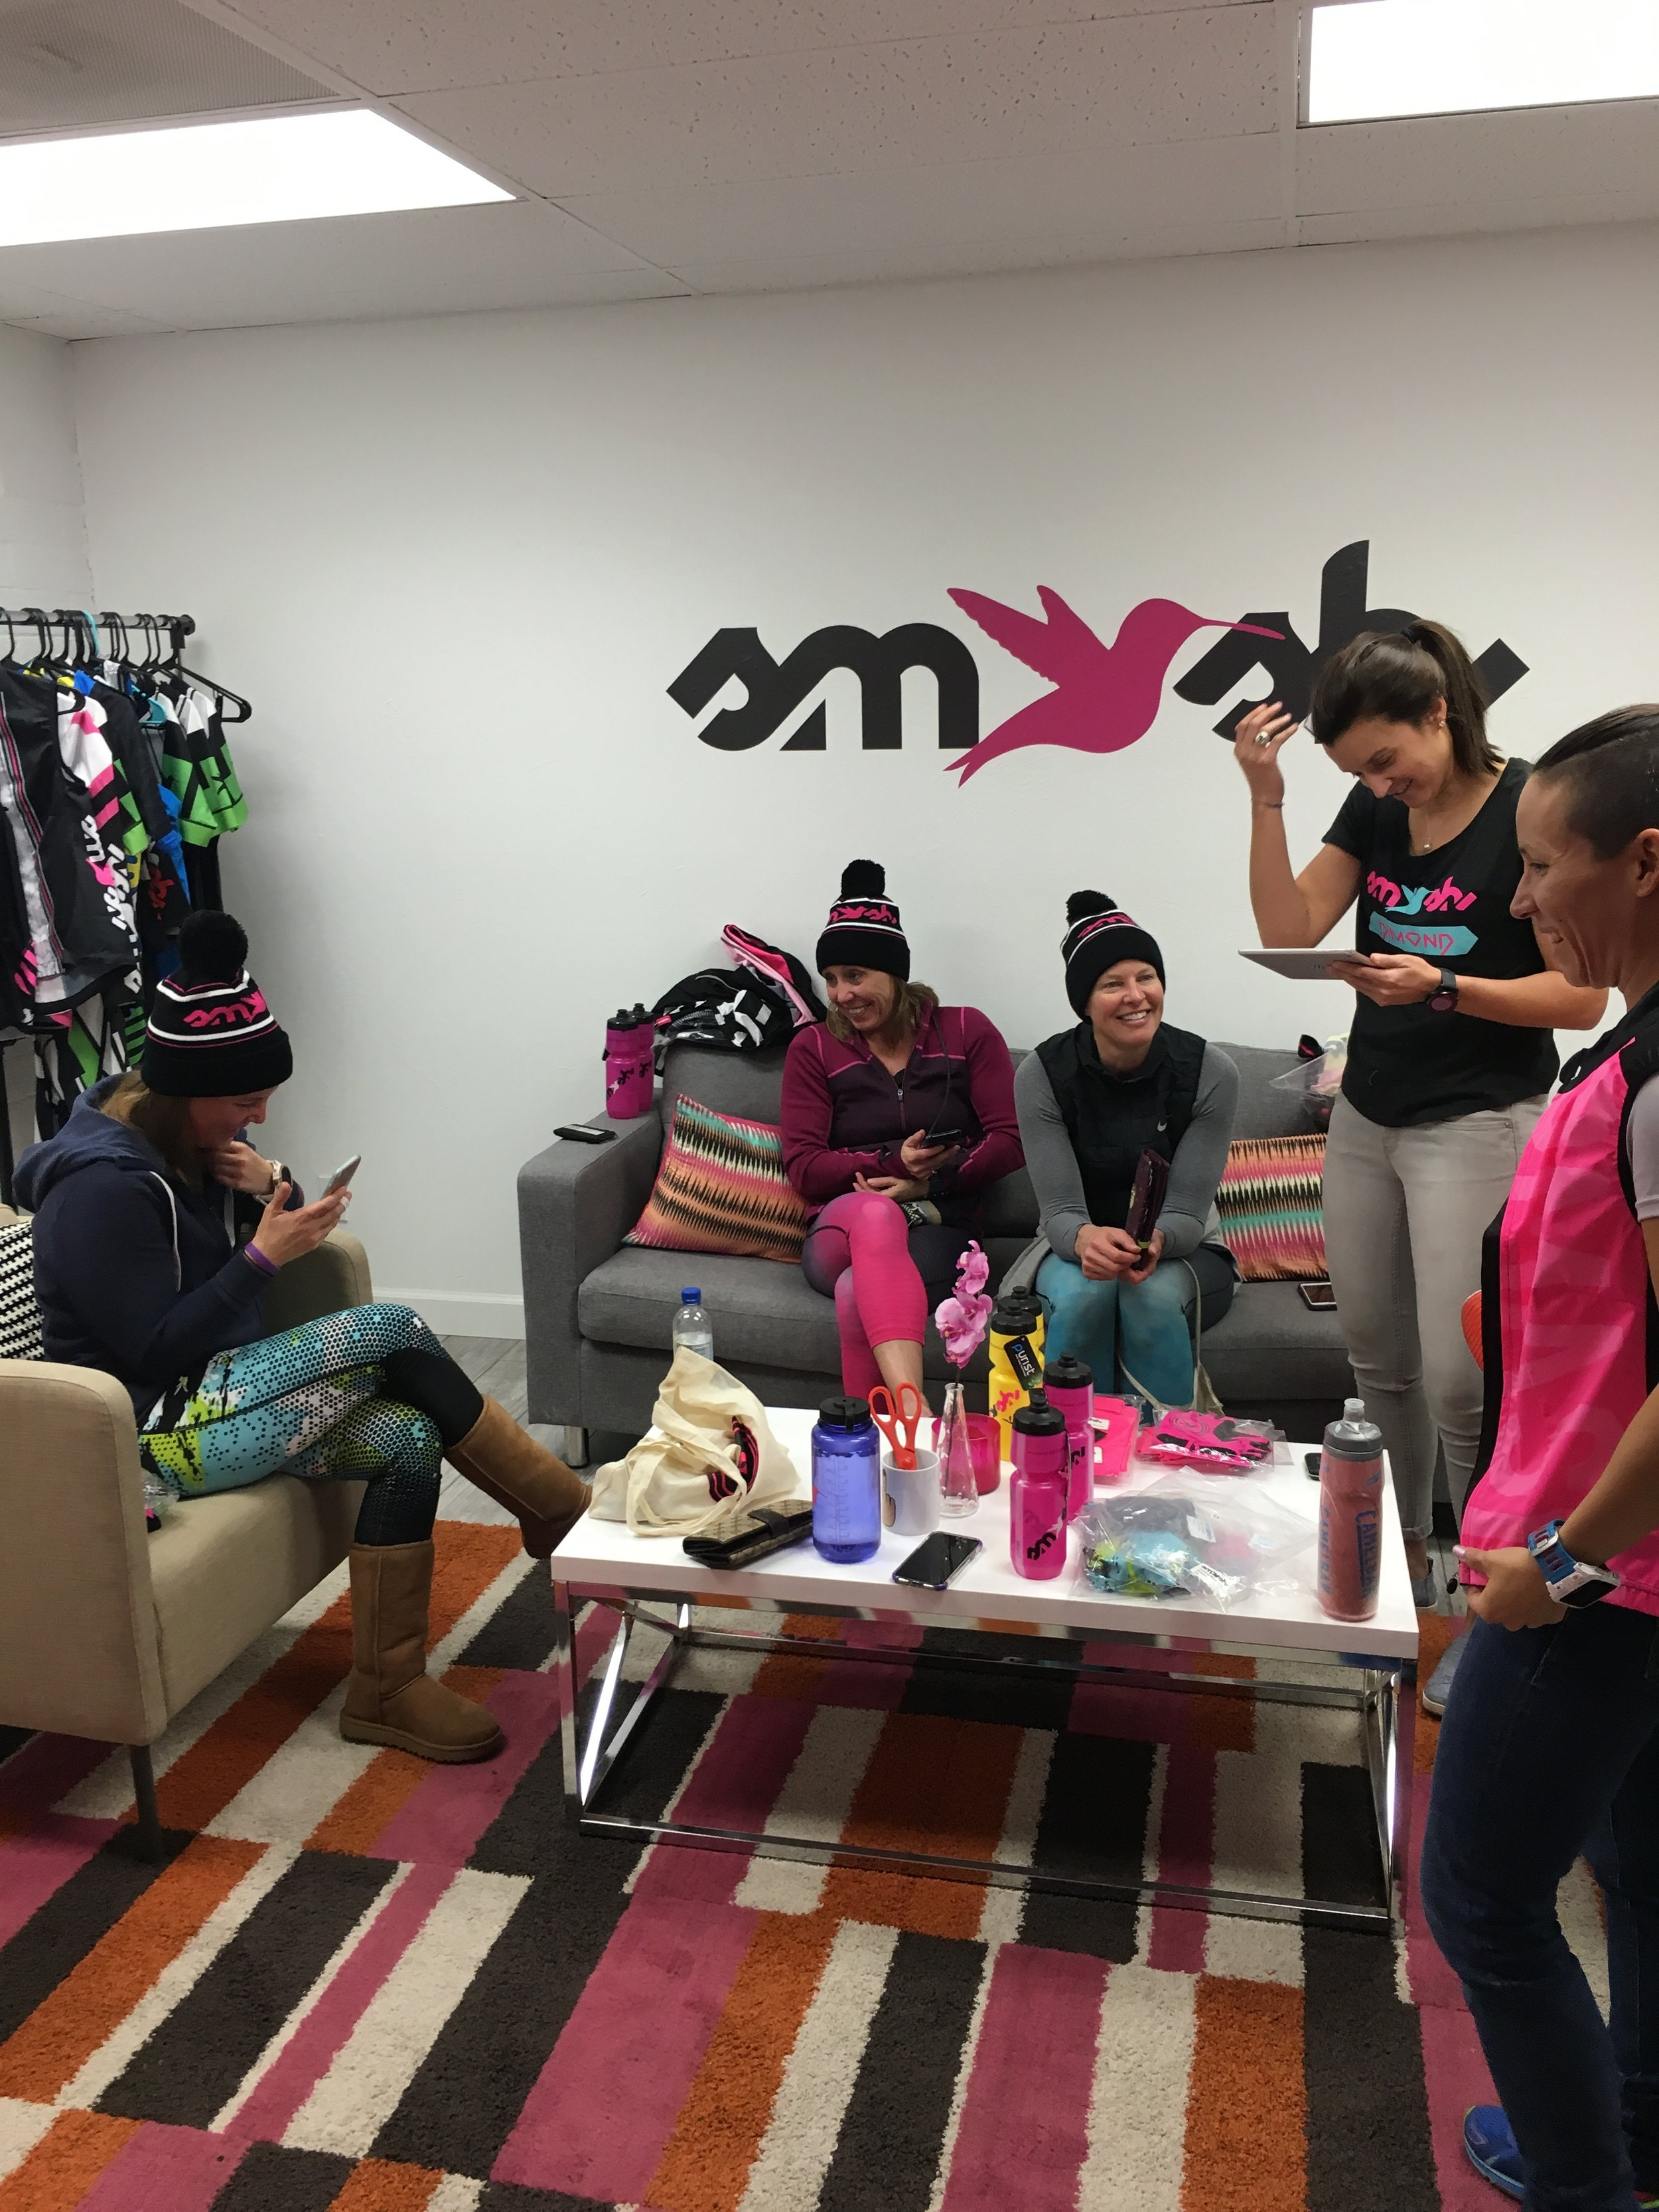 My teammates Jan, Amy, Mary, Lauren, and Rosario soaking up the amazingness at Smashfest Queen HQ.